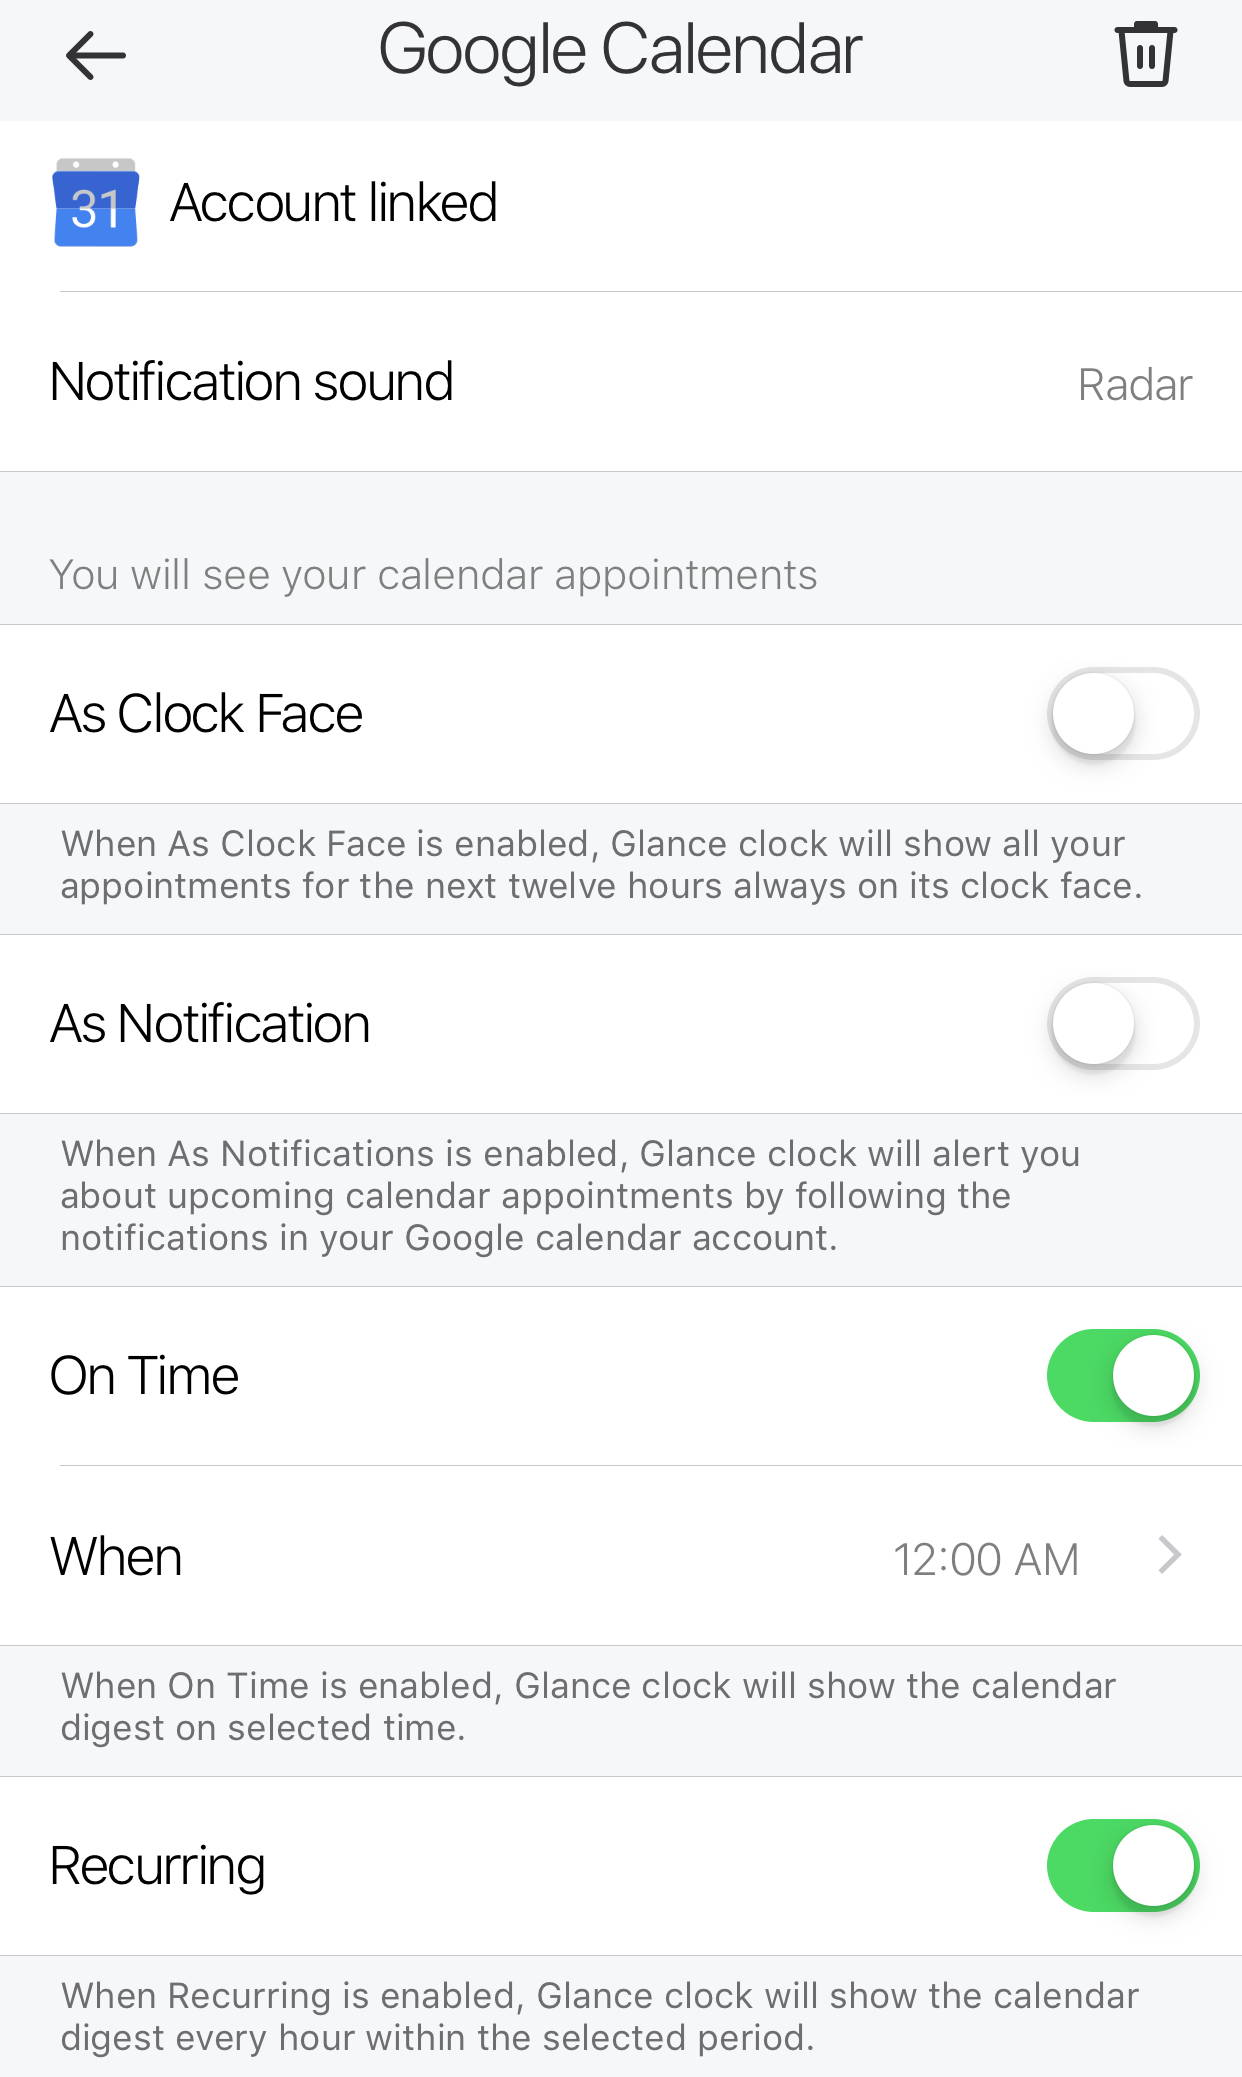 Glance Clock - Apple Calendar - On Schedule